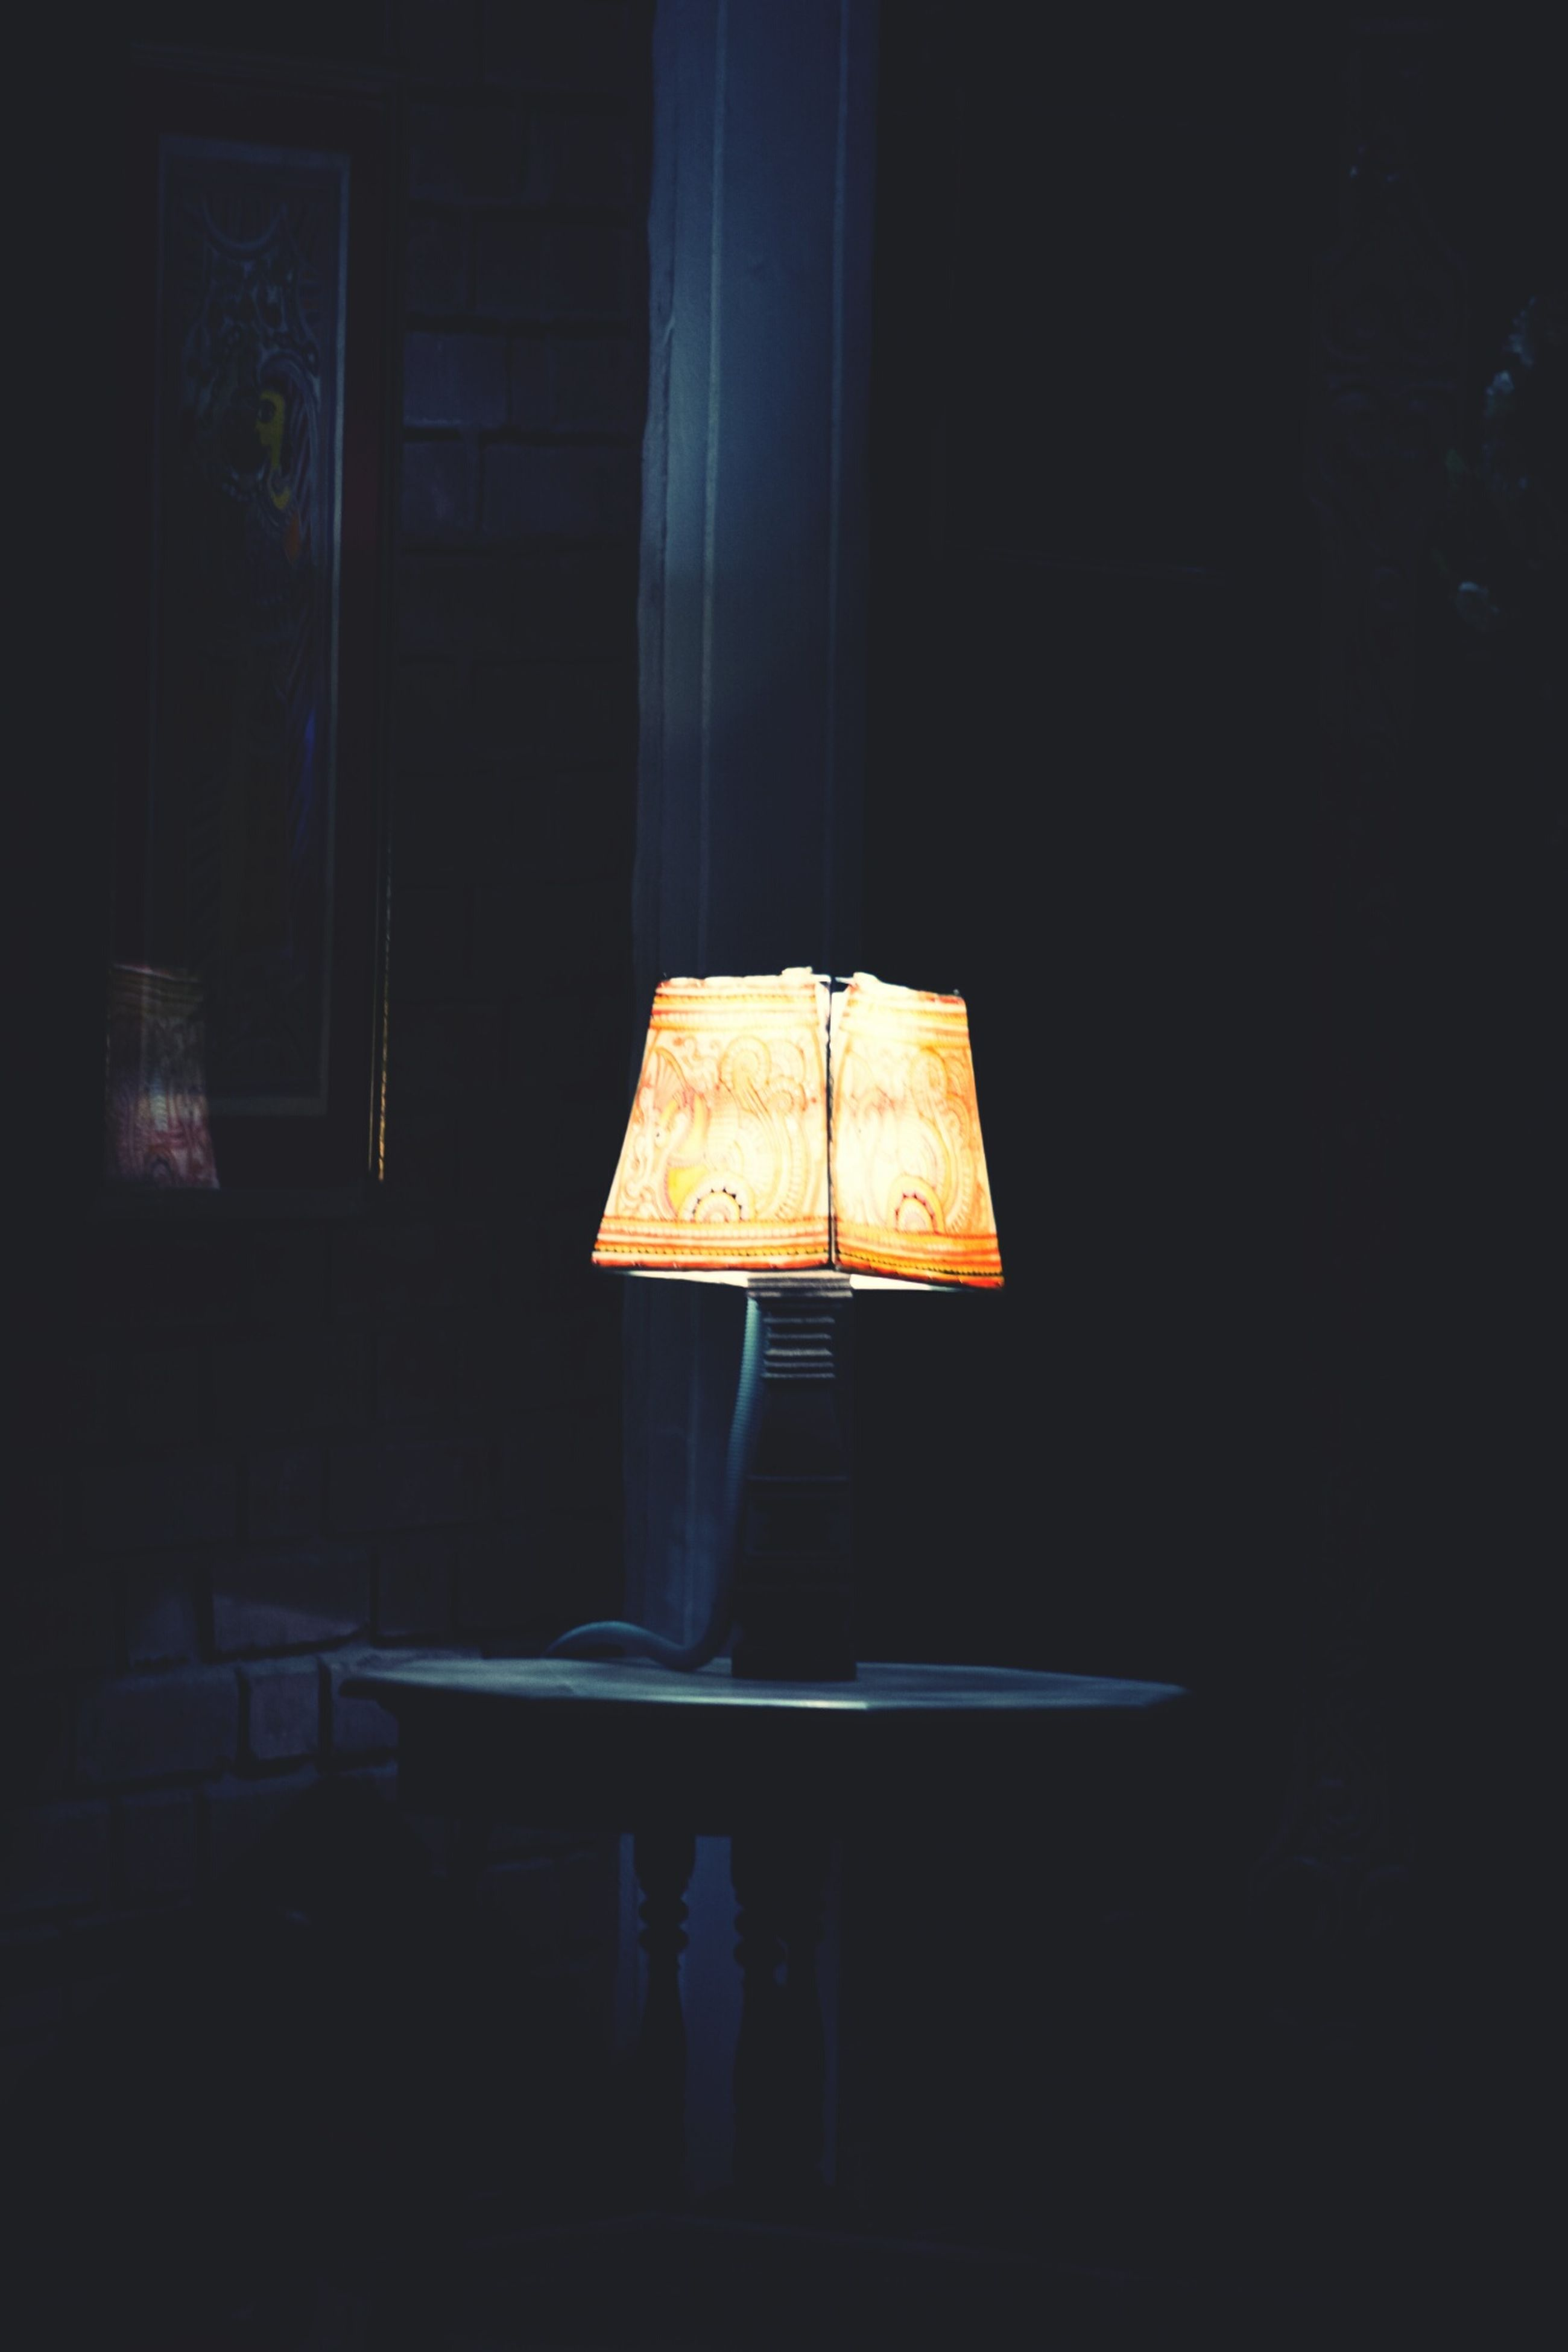 indoors, illuminated, dark, home interior, night, still life, wall - building feature, lighting equipment, table, copy space, burning, old, no people, close-up, darkroom, room, wood - material, house, flame, electric lamp